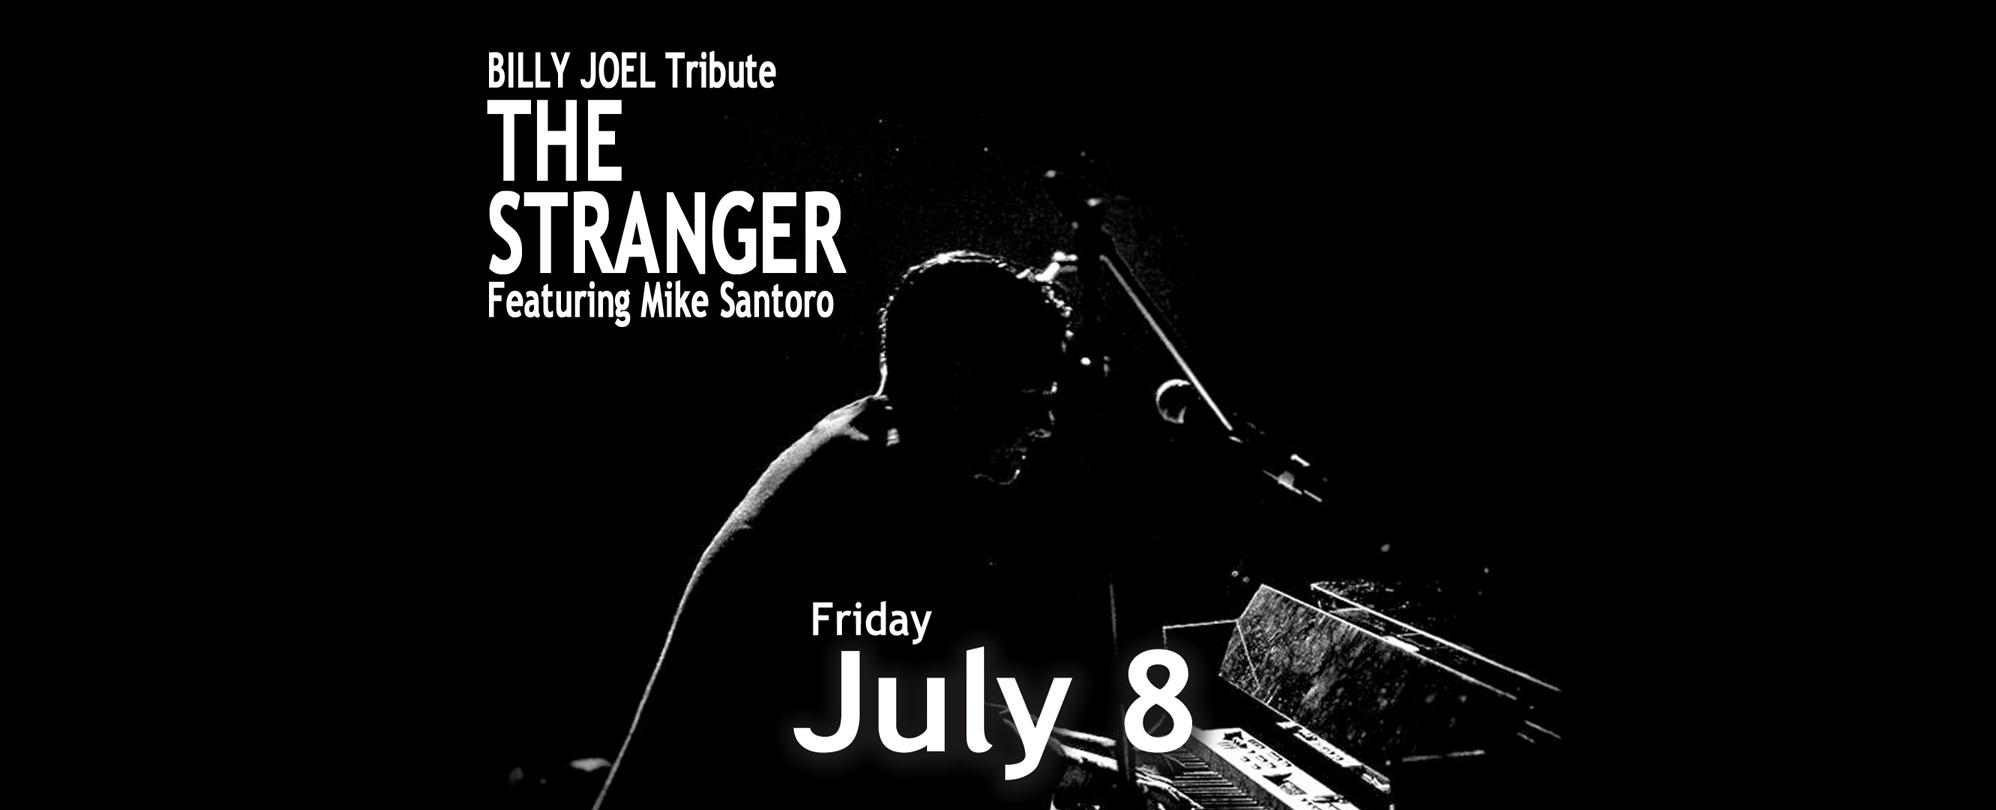 BILLY JOEL Tribute - The Stranger